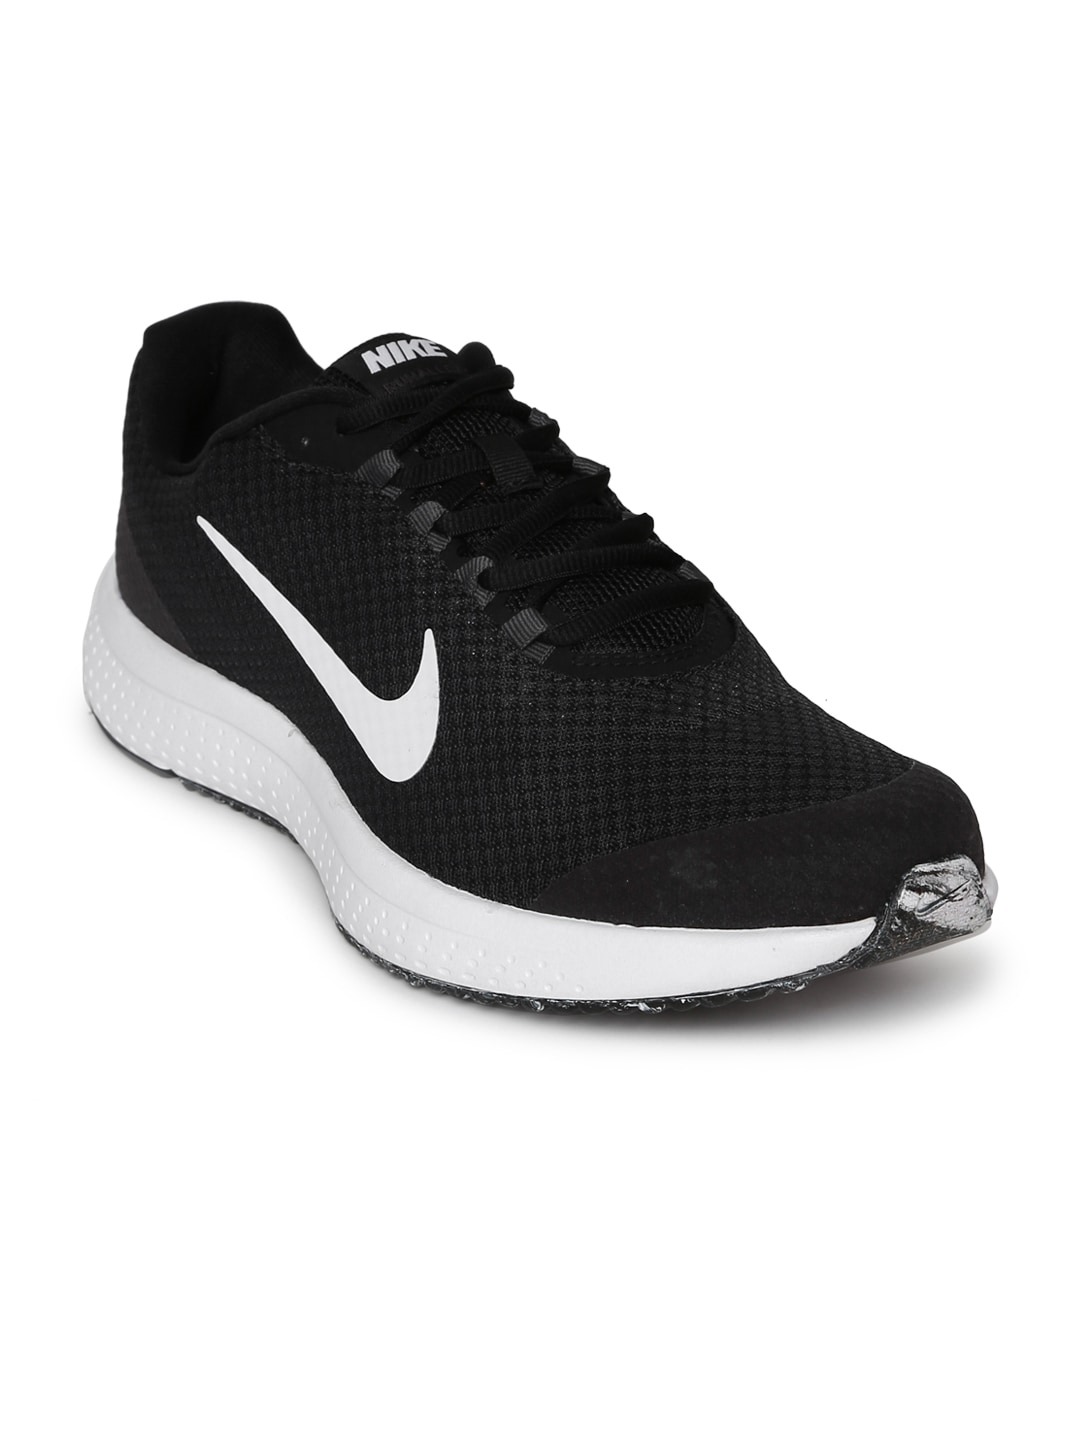 Nike Running Shoes - Buy Nike Running Shoes Online  Myntra